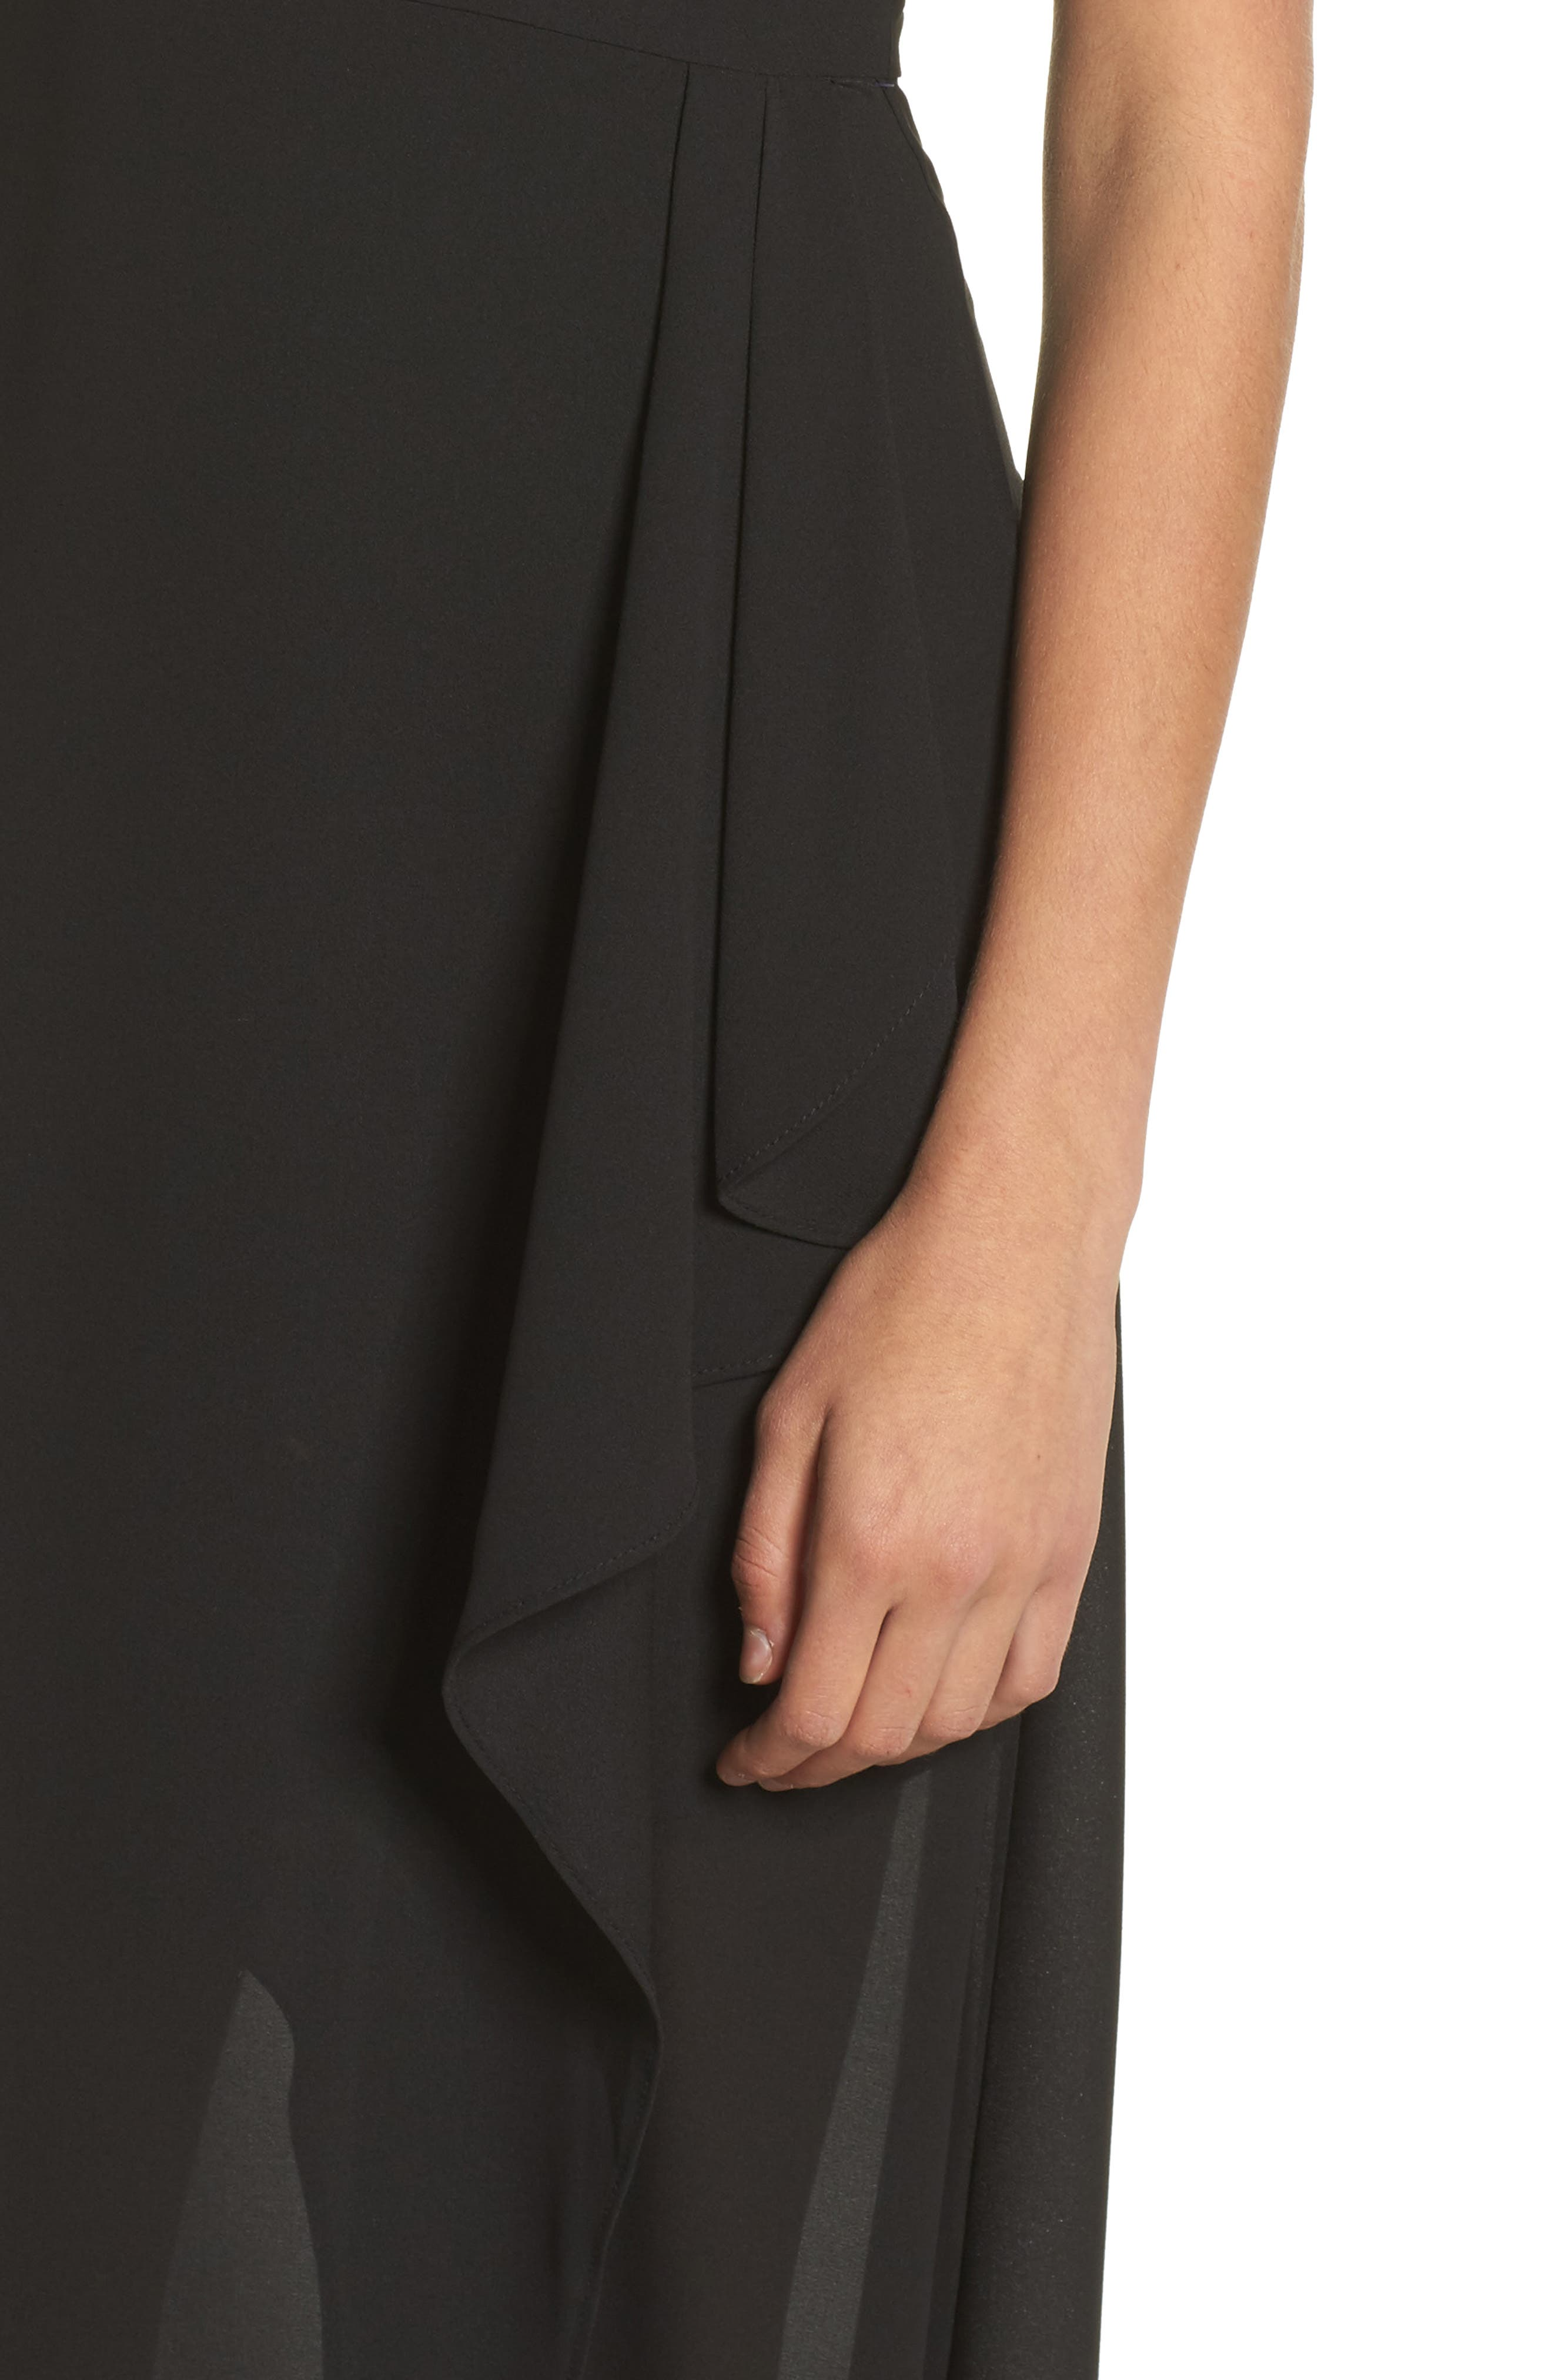 I Spy Maxi Dress,                             Alternate thumbnail 4, color,                             Black